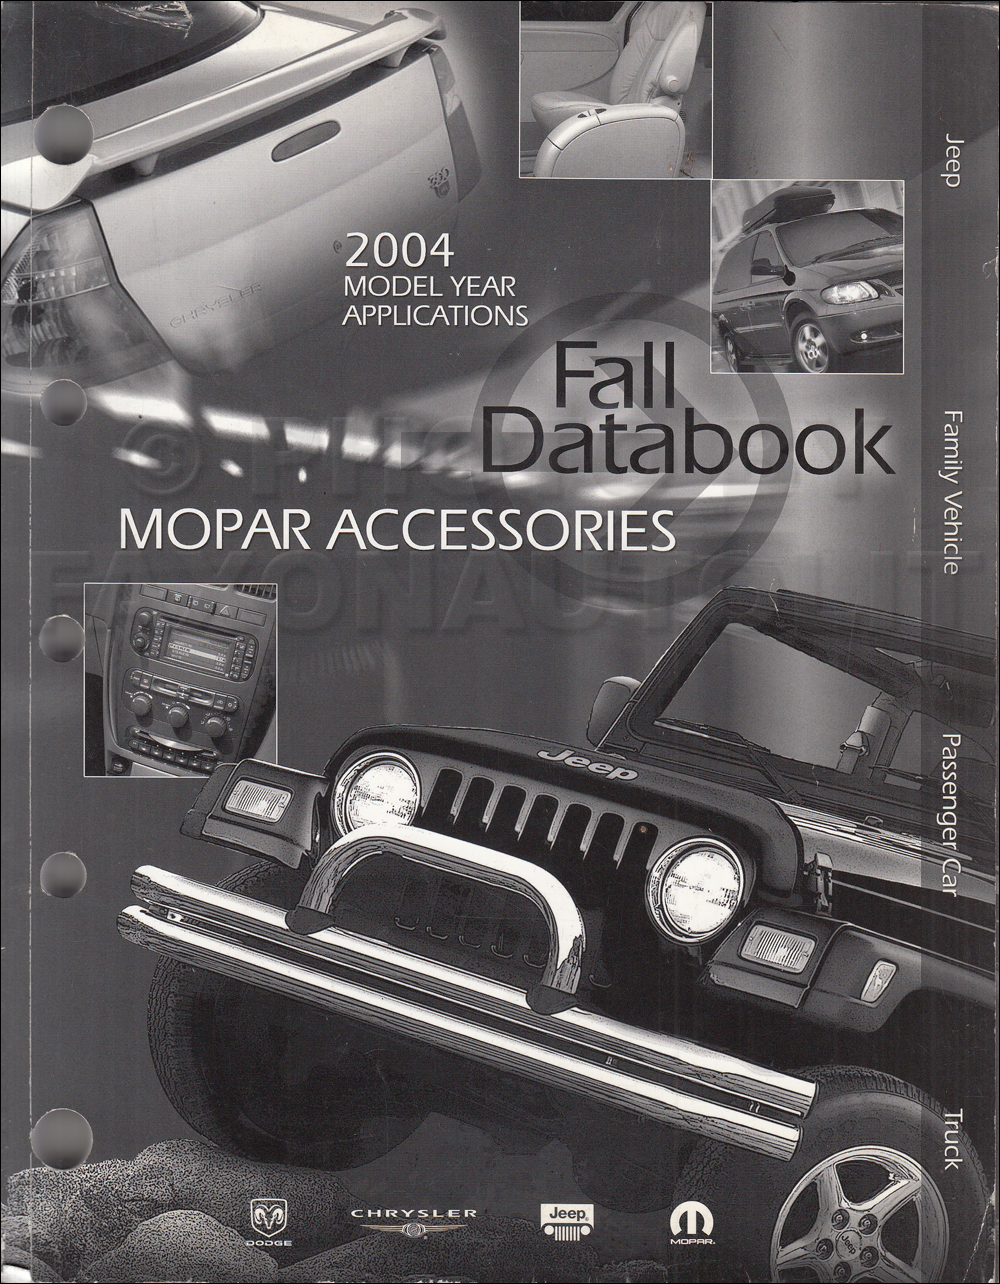 2004 MoPar Accessories Fall Databook Original